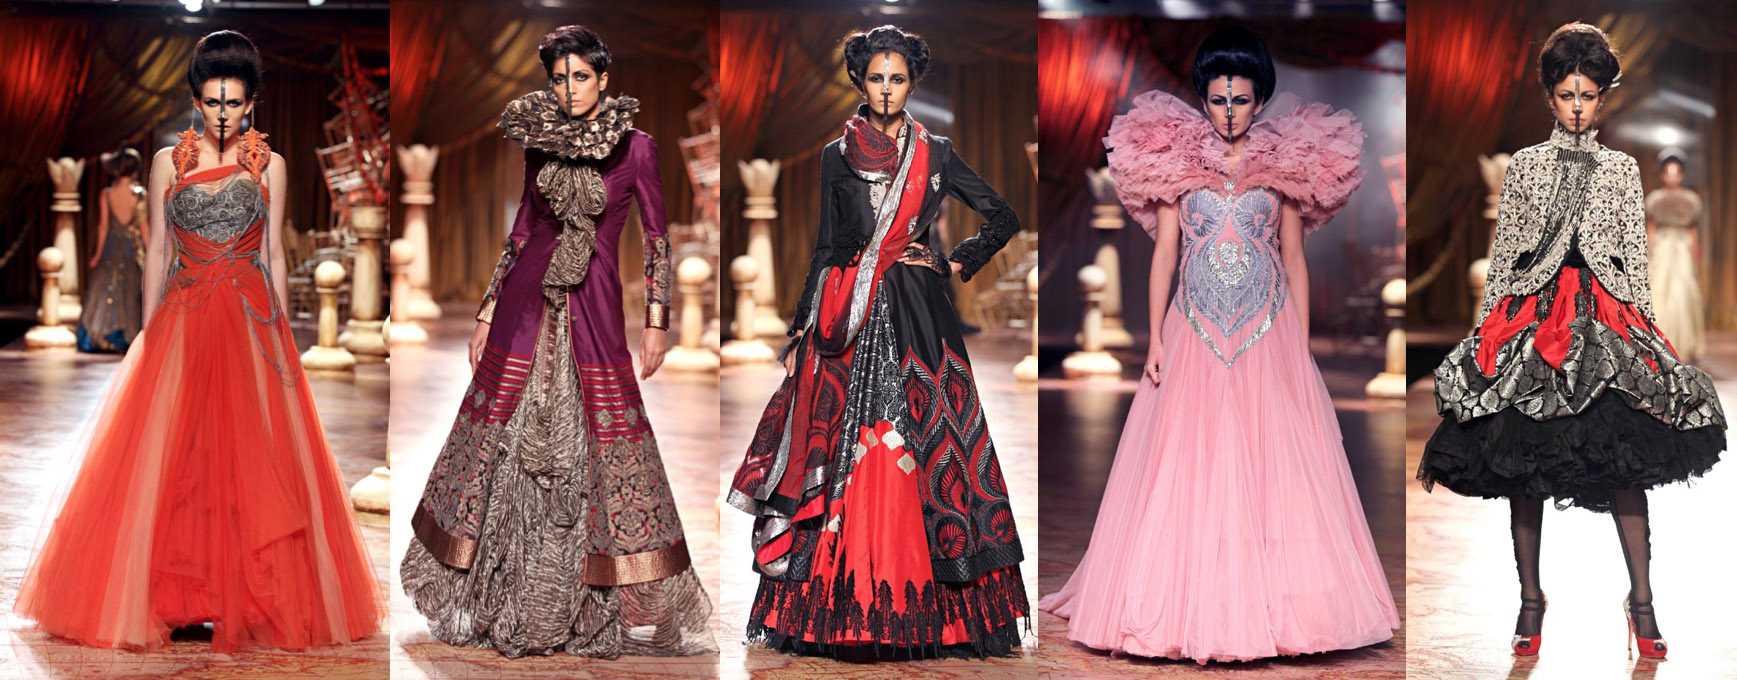 Aifw 2015 High On Design Less On Bollywood Drama